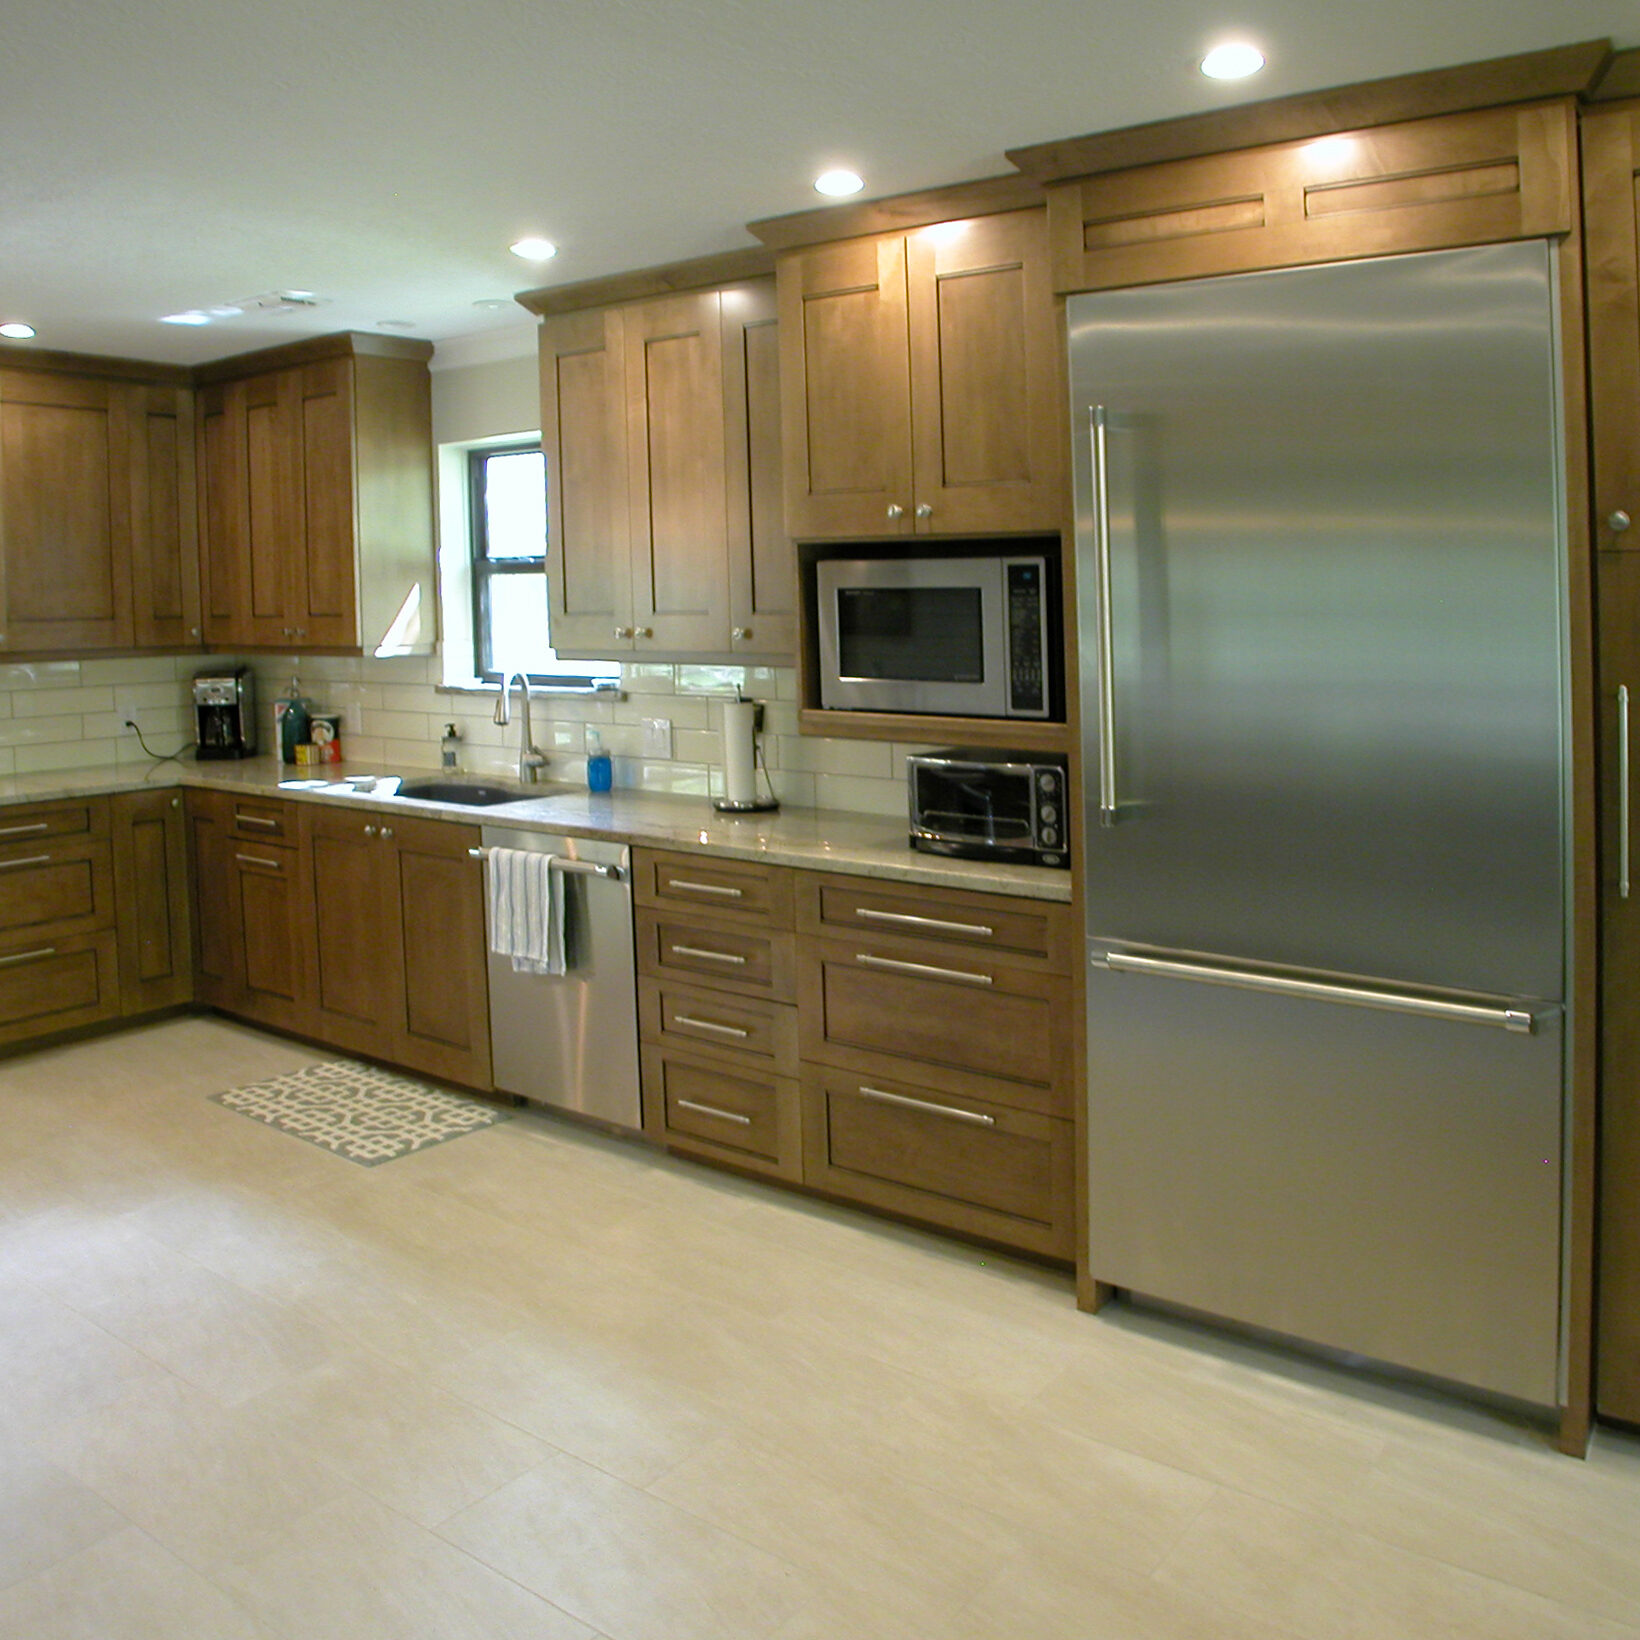 Expanded Kitchen in Taylor Lake Village, TX